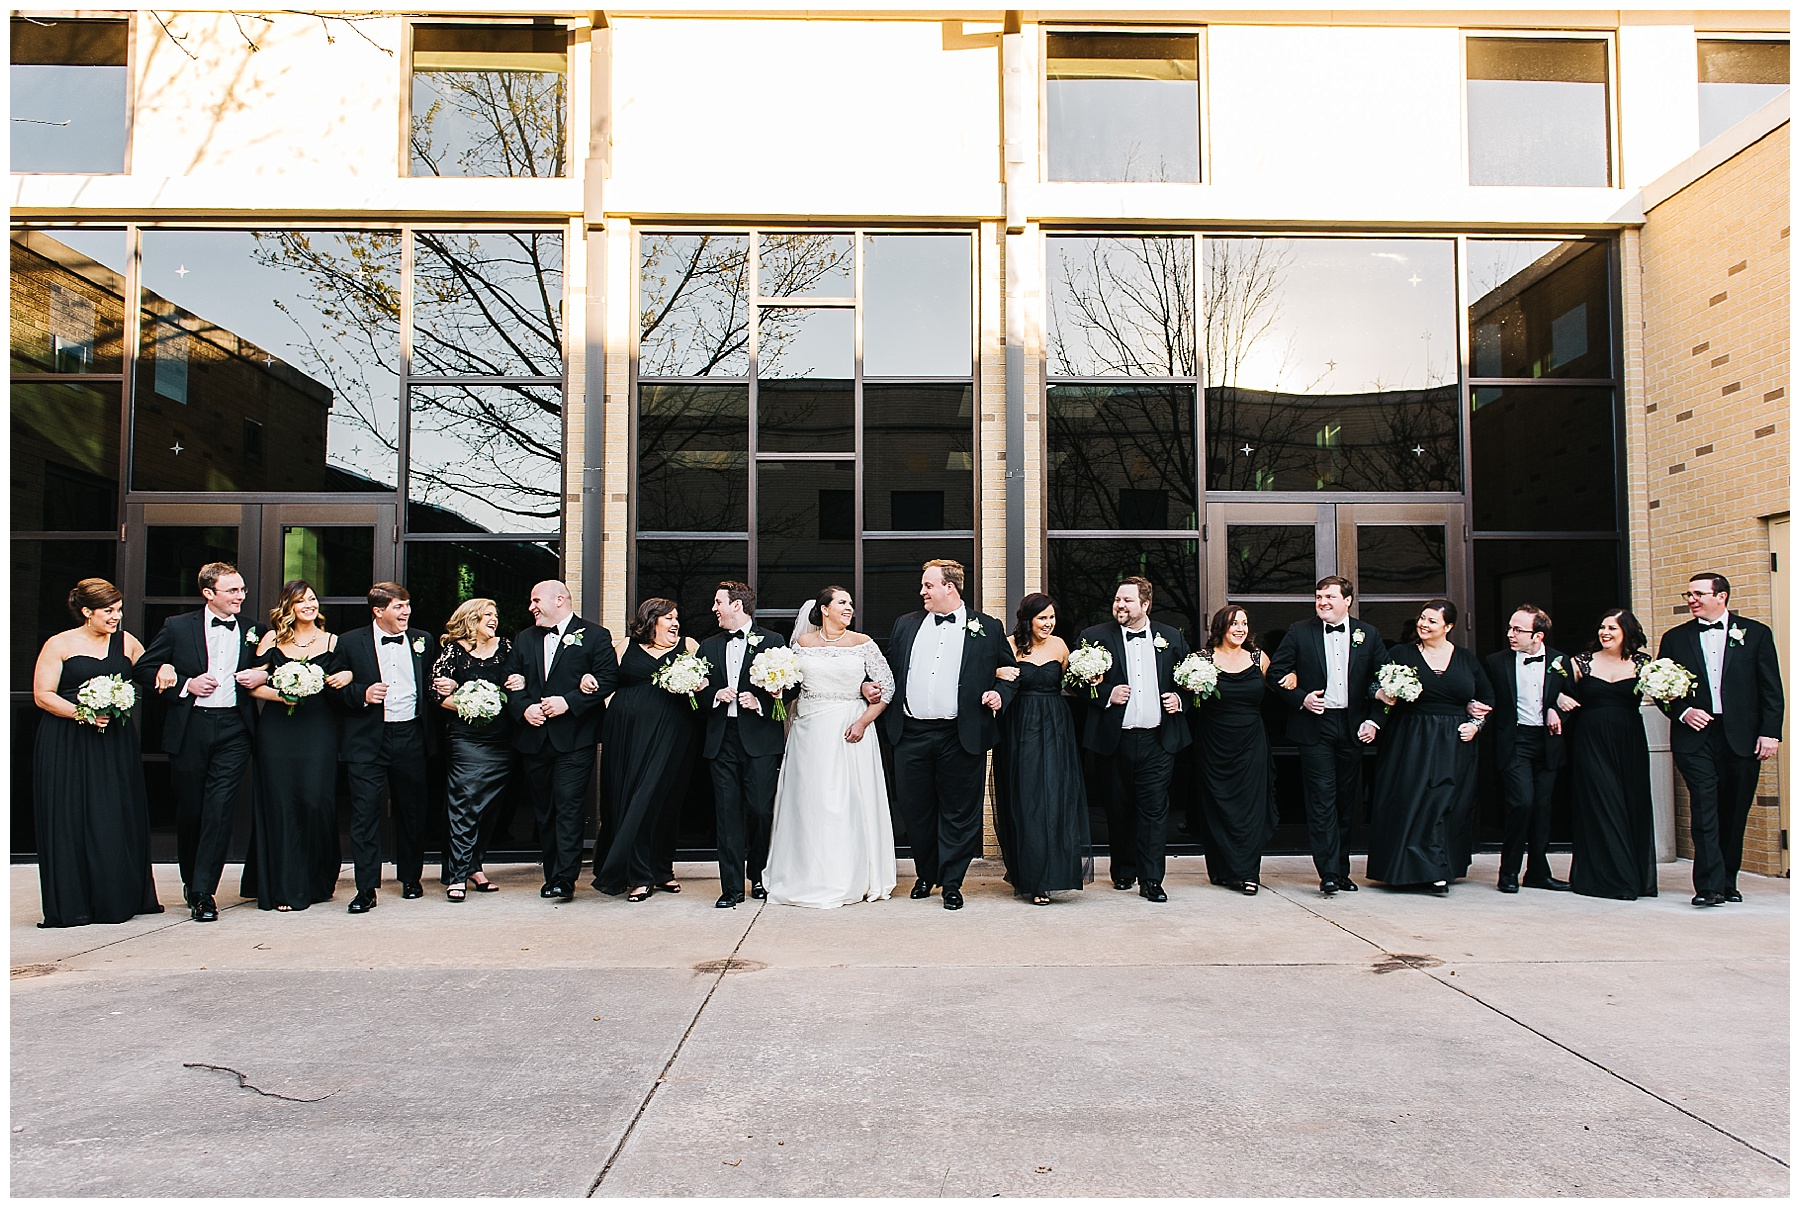 lydia royce, christ the king catholic church, CHK central boathouse, the bridal boutique, bridal maison by moe, men's wearhouse, borrowed charm events rentals and styling, rococo, oklahoma wedding, central oklahoma events, classic bridal party